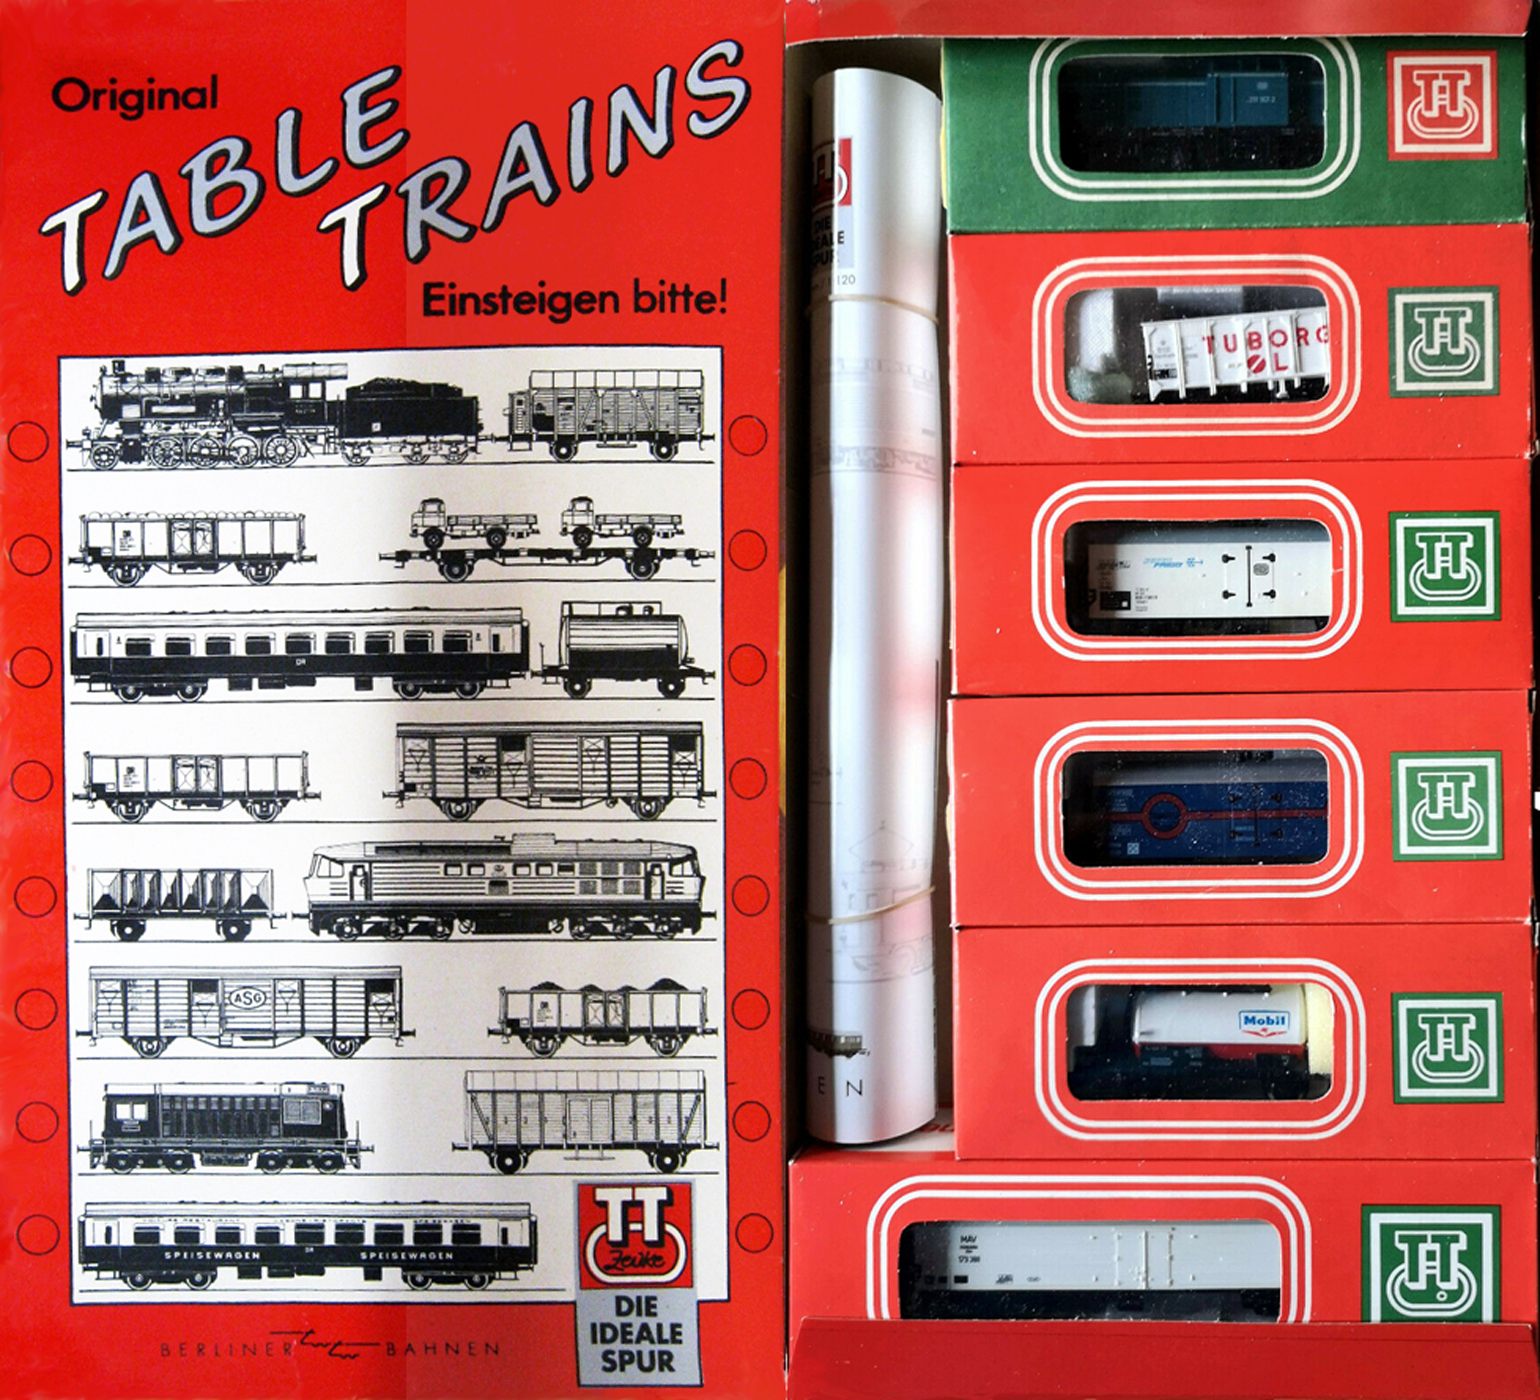 01250 BTTB-Zeuke  Original Table Trains-SET